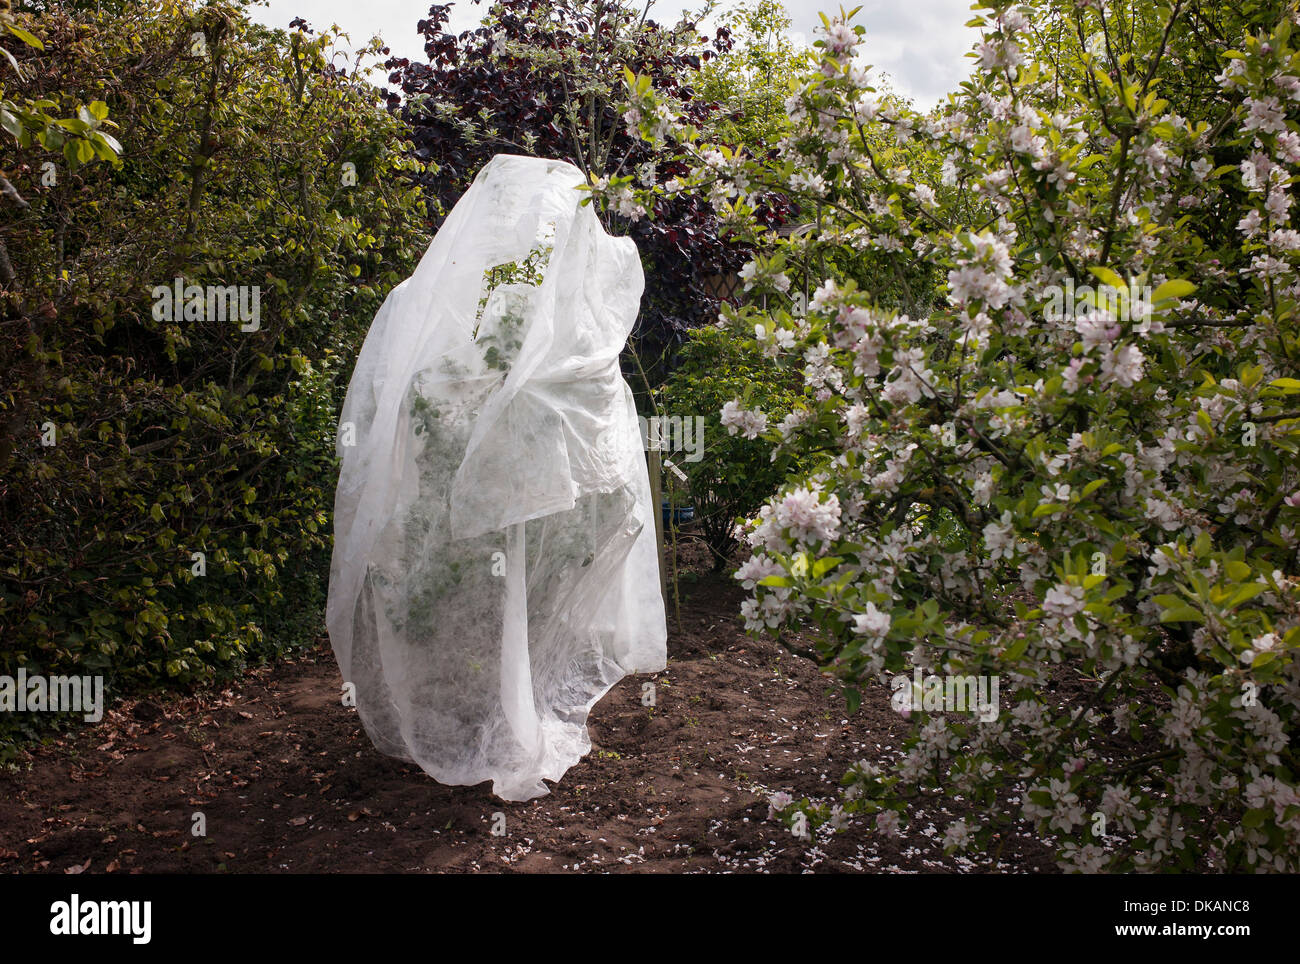 Shrouded newly planted young fruit tree protected from possible overnight frost in UK - Stock Image